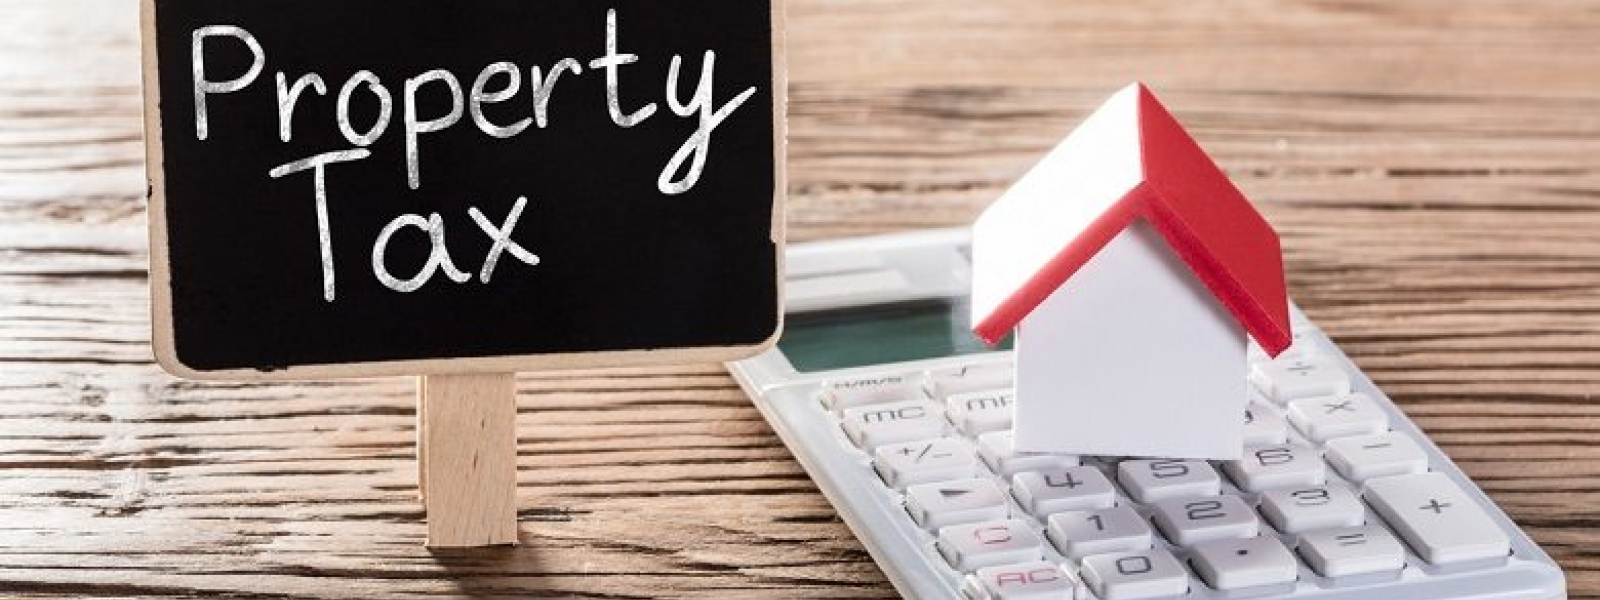 Property Tax 780x390